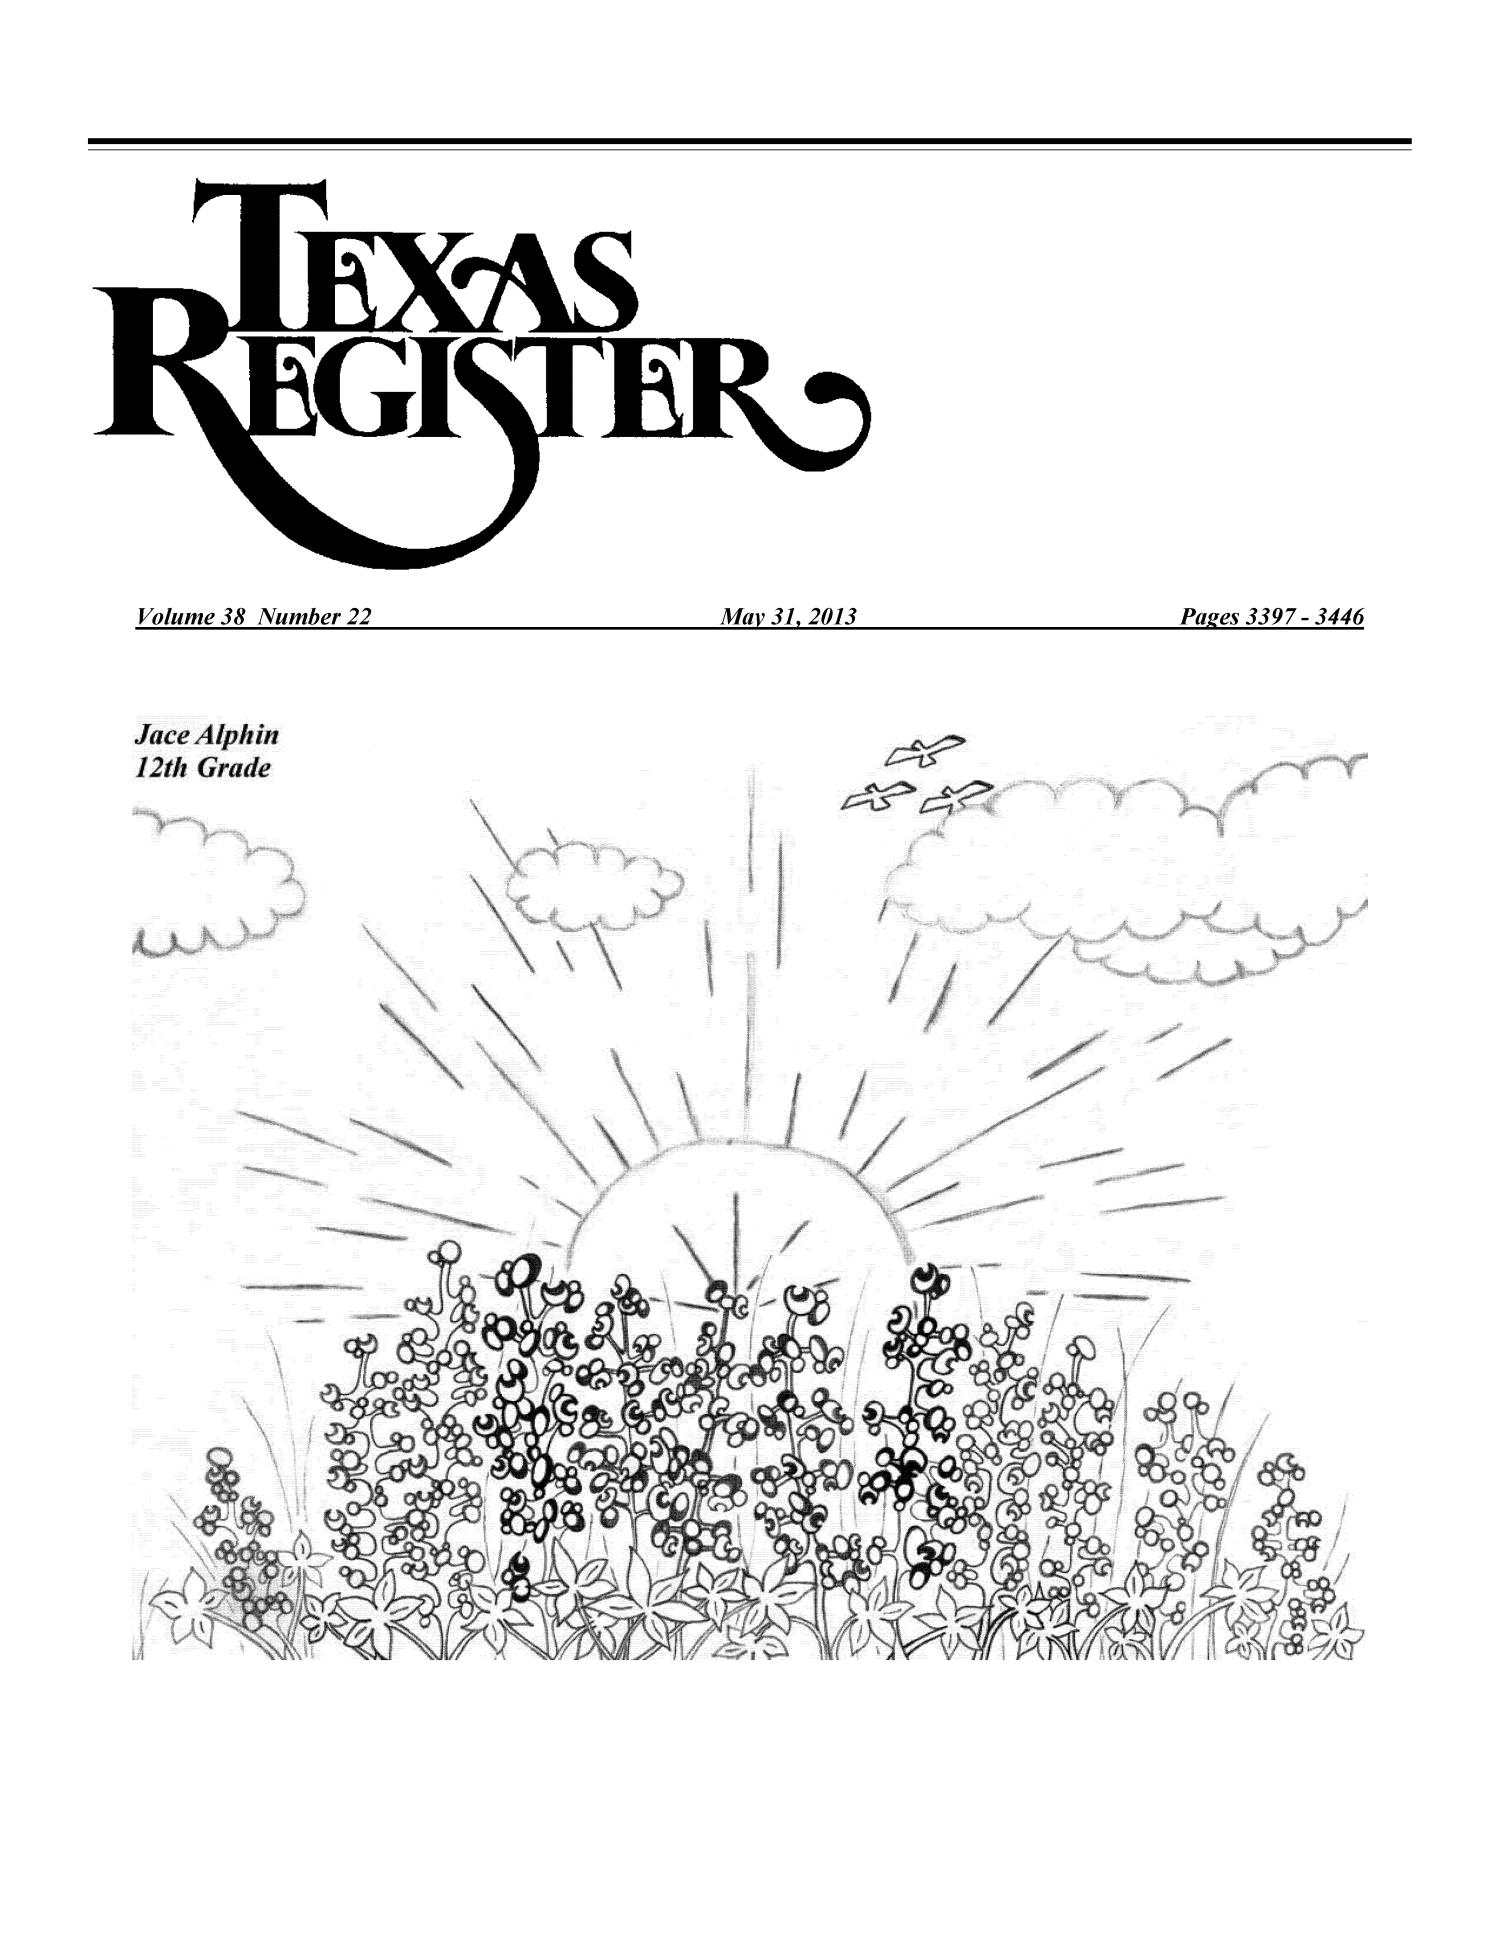 Texas Register, Volume 38, Number 22, Pages 3397-3446, May 31, 2013                                                                                                      Title Page